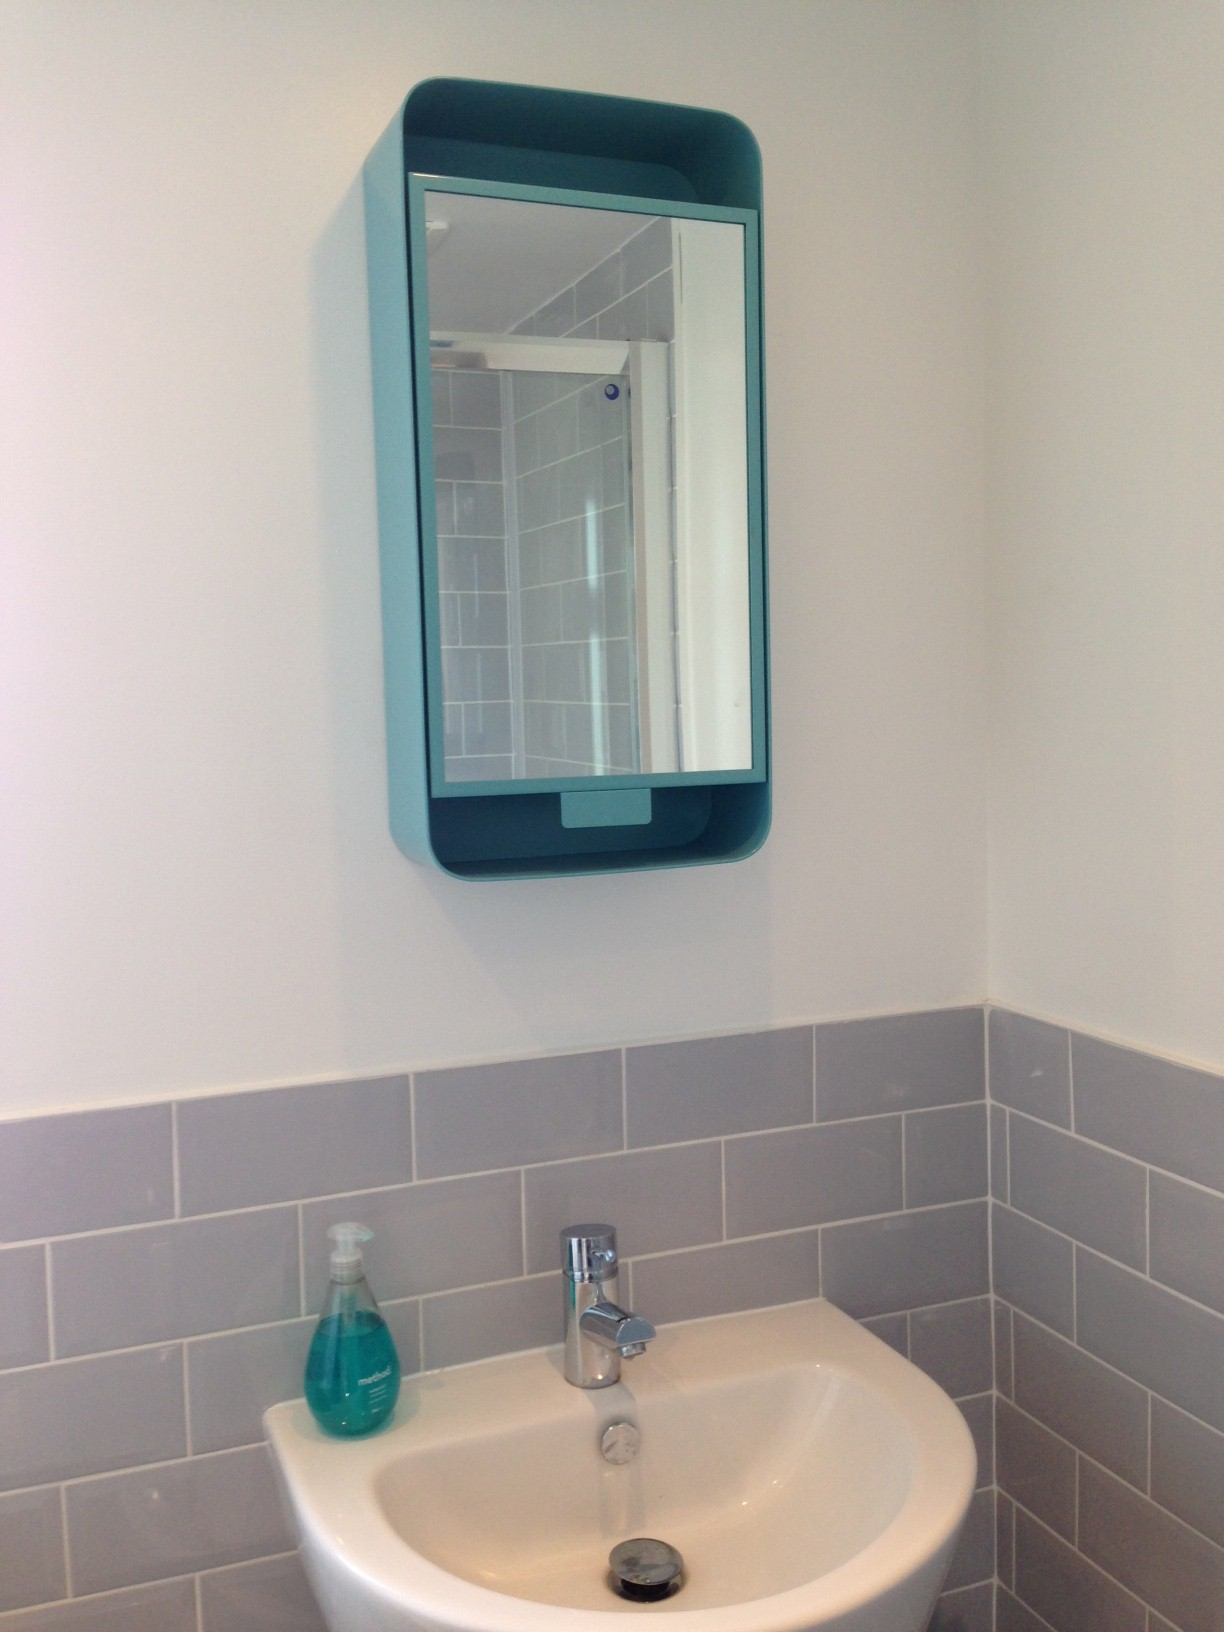 Amazing BATHROOM MIRROR With Shelves Stunning NAUTICAL Design Plain Wall Hung